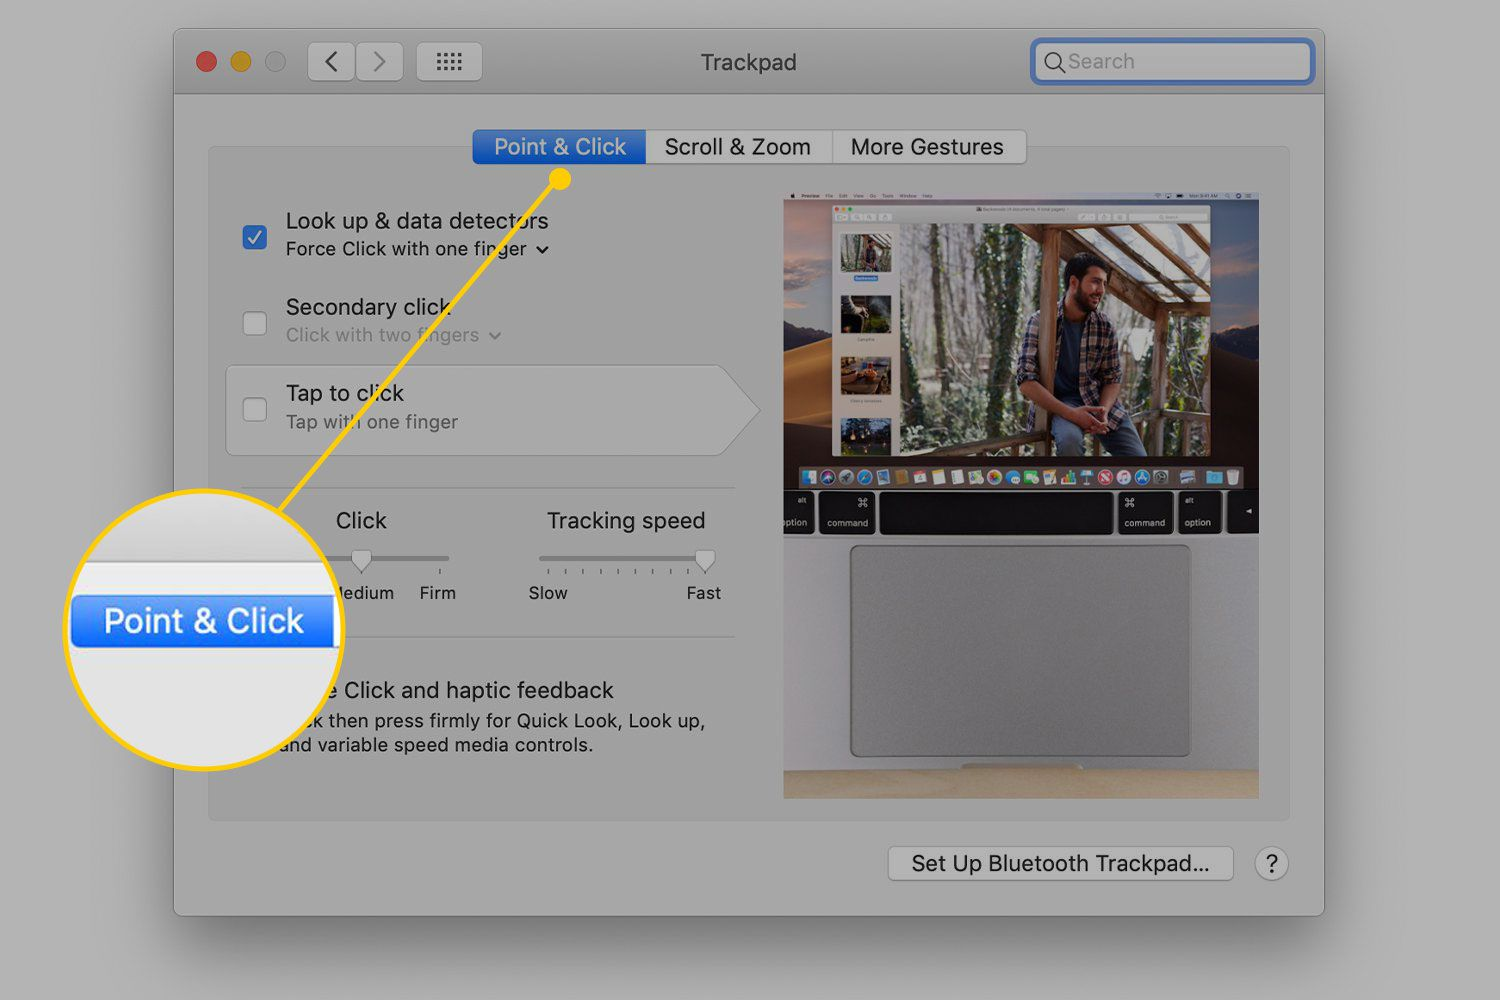 Point & Click tab in Trackpad settings on a Mac